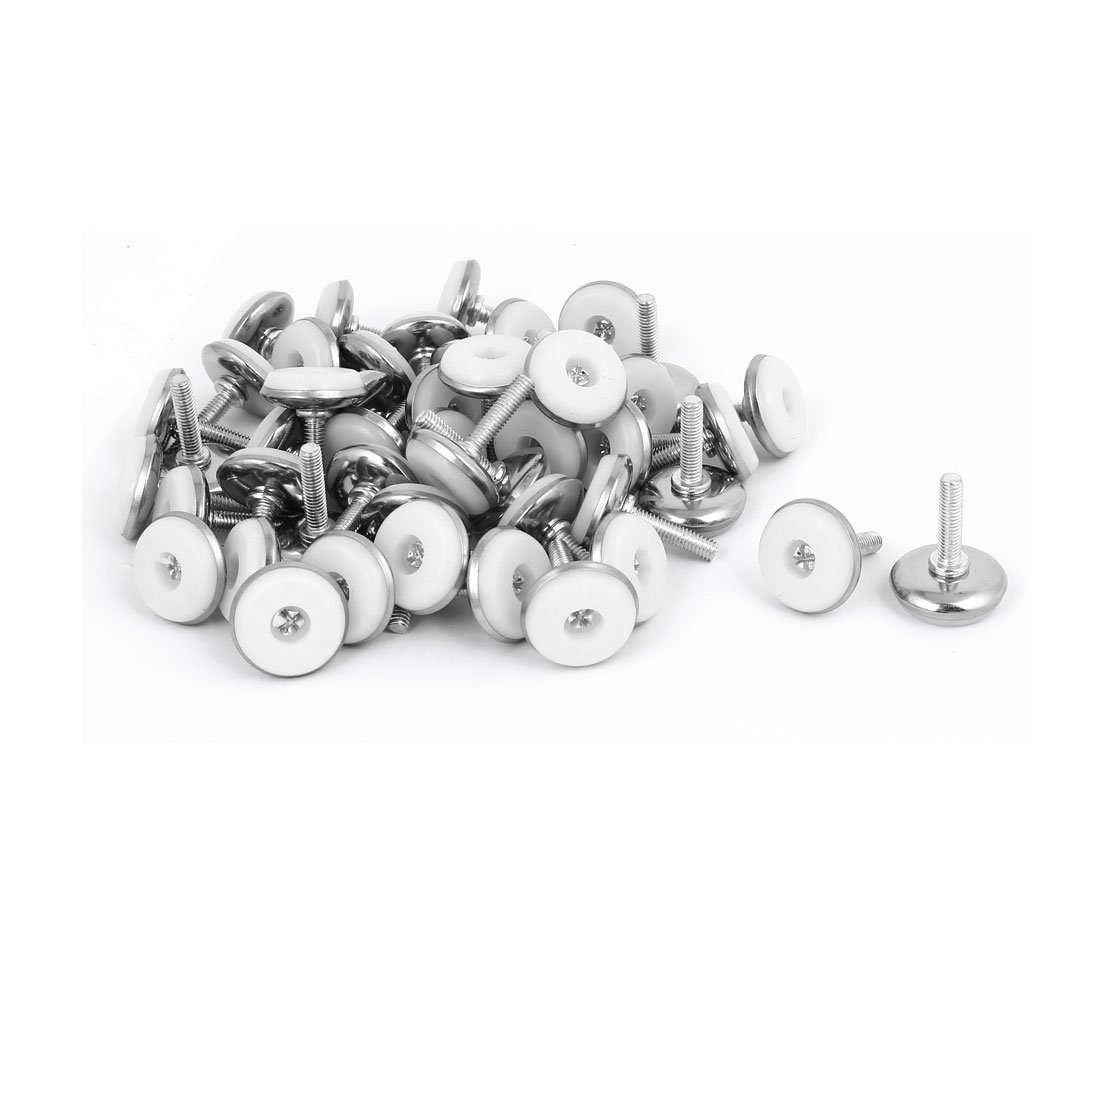 uxcell M6x25mm Plastic Base Adjustable Leveling Glide Foot 50pcs for Cabinet Table Leg